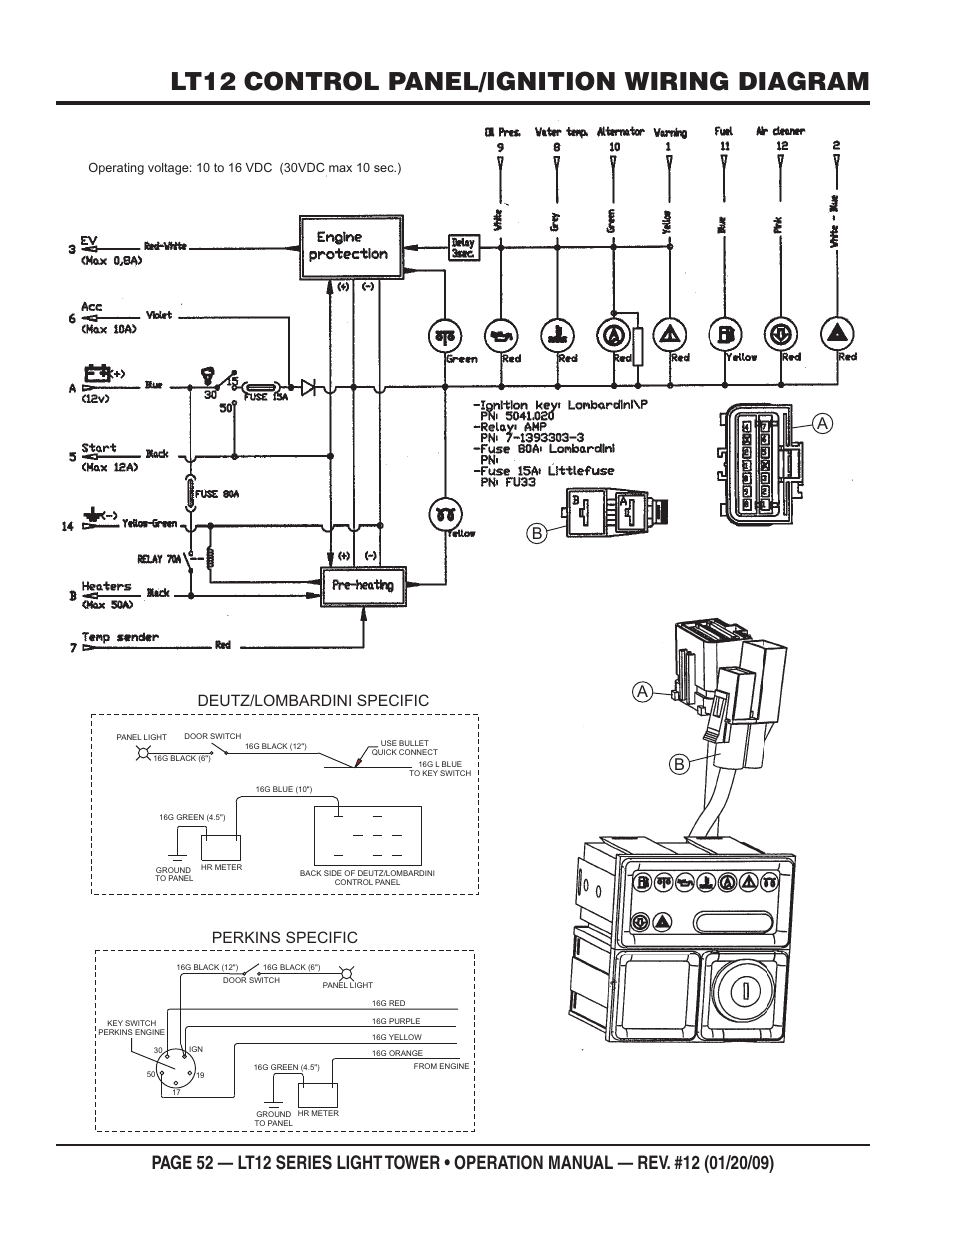 Lt12 Control Panel  Ignition Wiring Diagram  Perkins